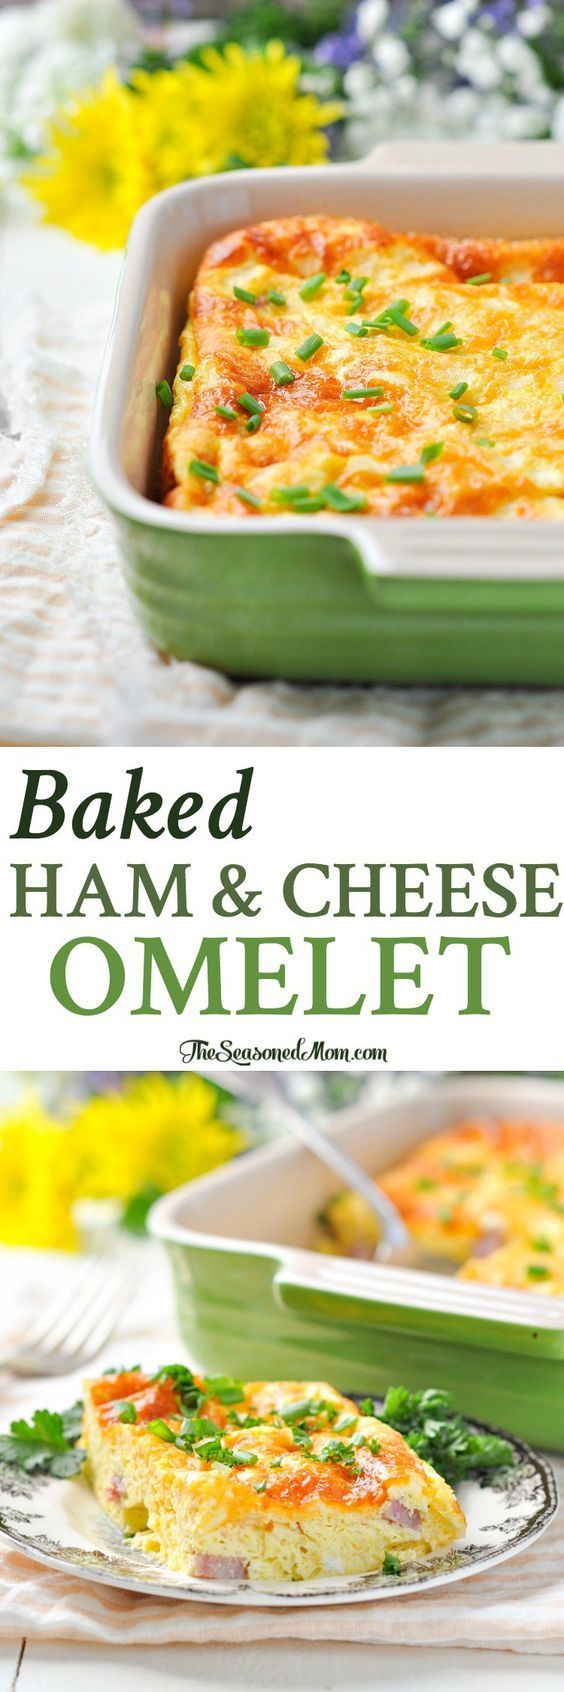 Baked Ham and Cheese Omelet | Healthy Breakfast Recipes | Breakfast Ideas Healthy | Breakfast Casserole | Leftover Ham Recipes | Brunch Ideas | Brunch Recipes | Brunch Party | Egg Recipes | Gluten Free